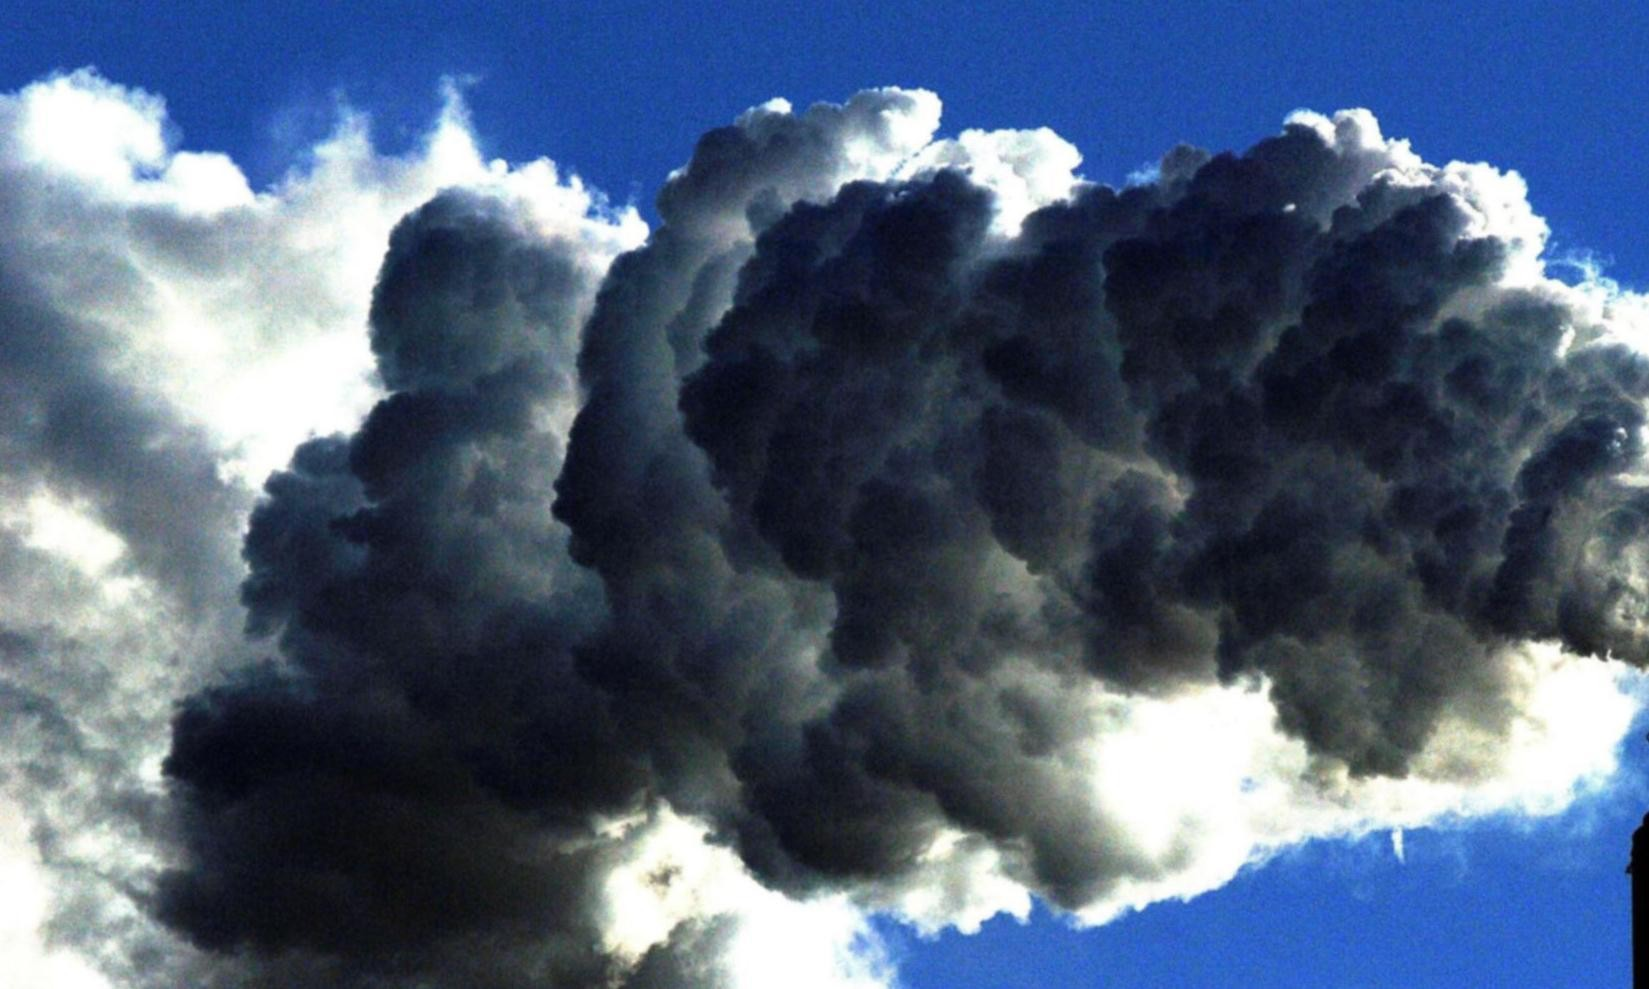 Australia will need to remove CO2 from air to keep warming below 2C, climate body says